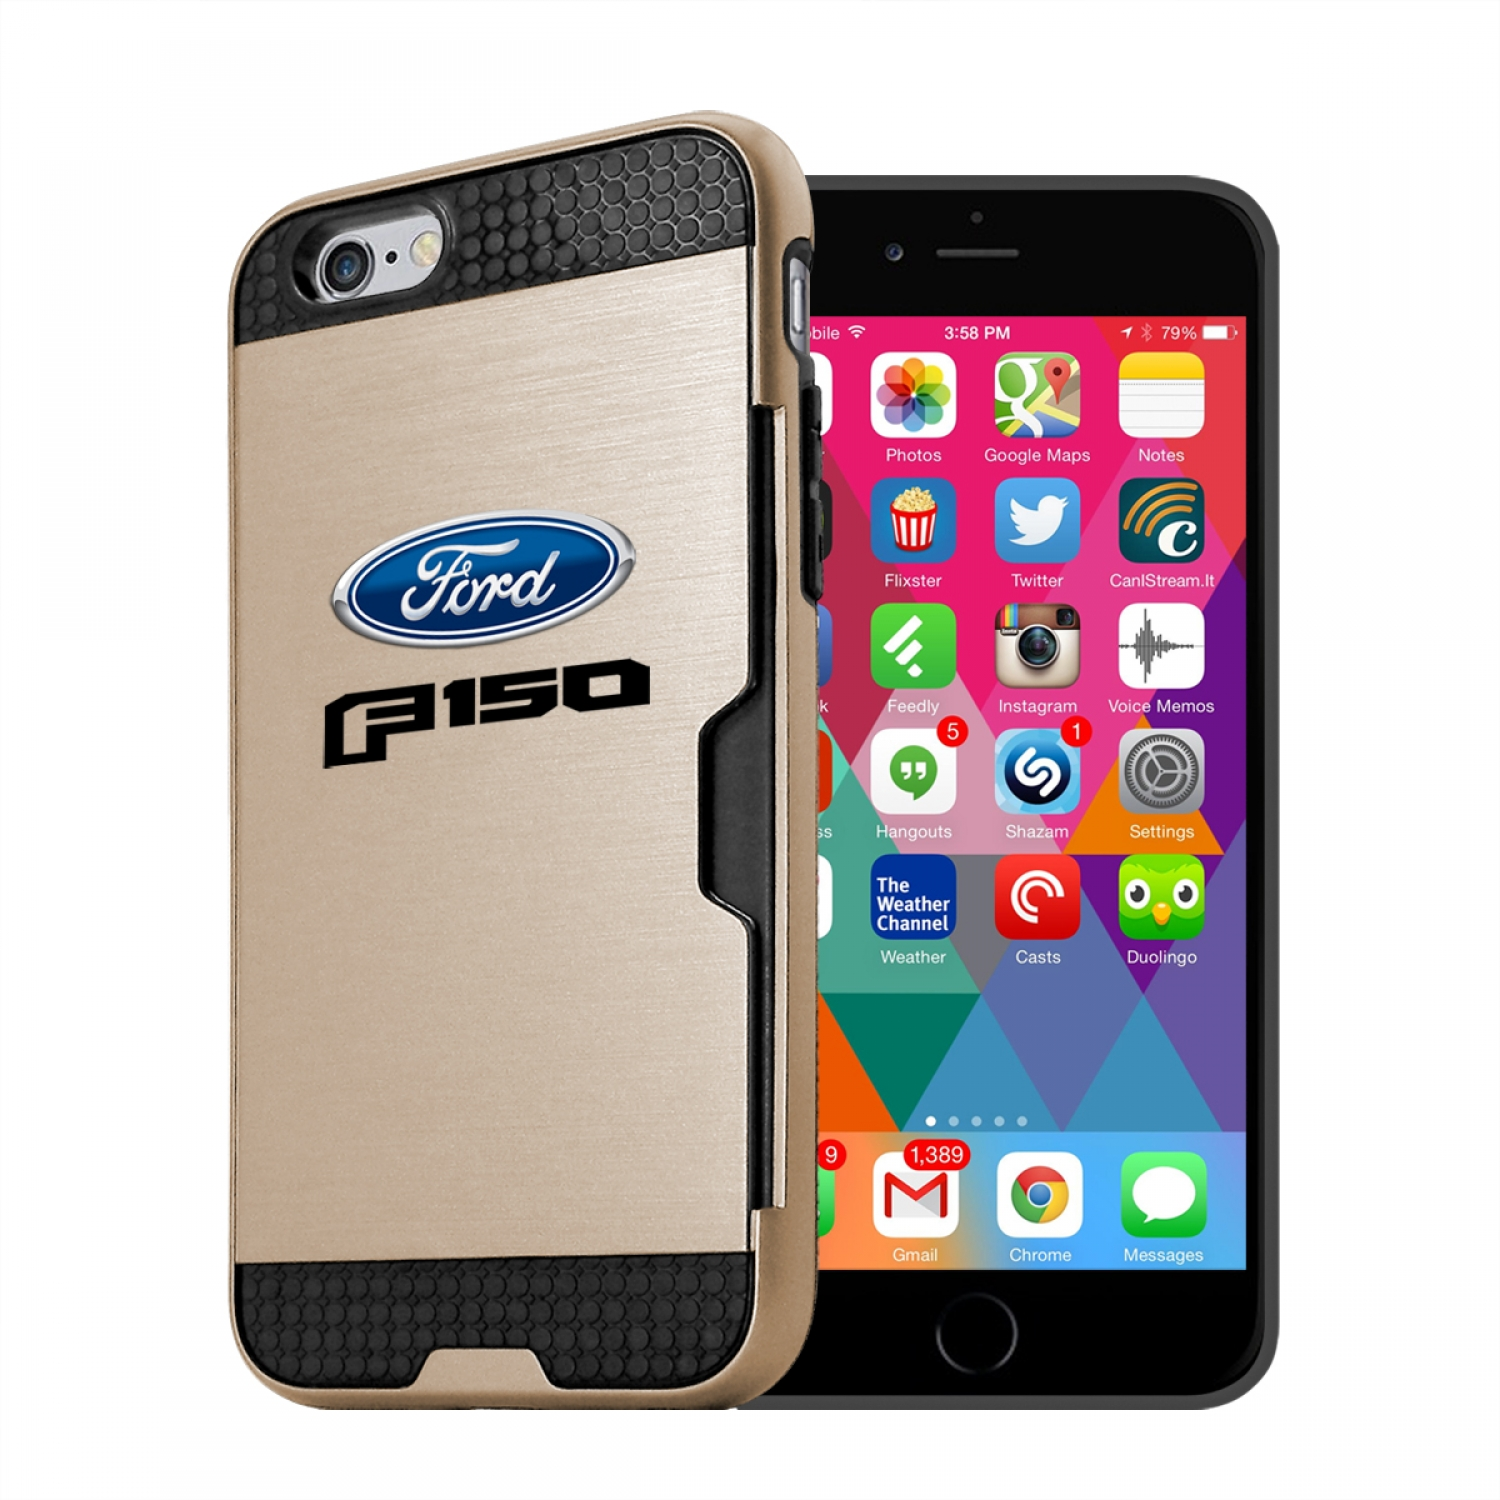 Ford F-150 2015 up iPhone 6 6s Ultra Thin TPU Golden Phone Case with Credit Card Slot Wallet